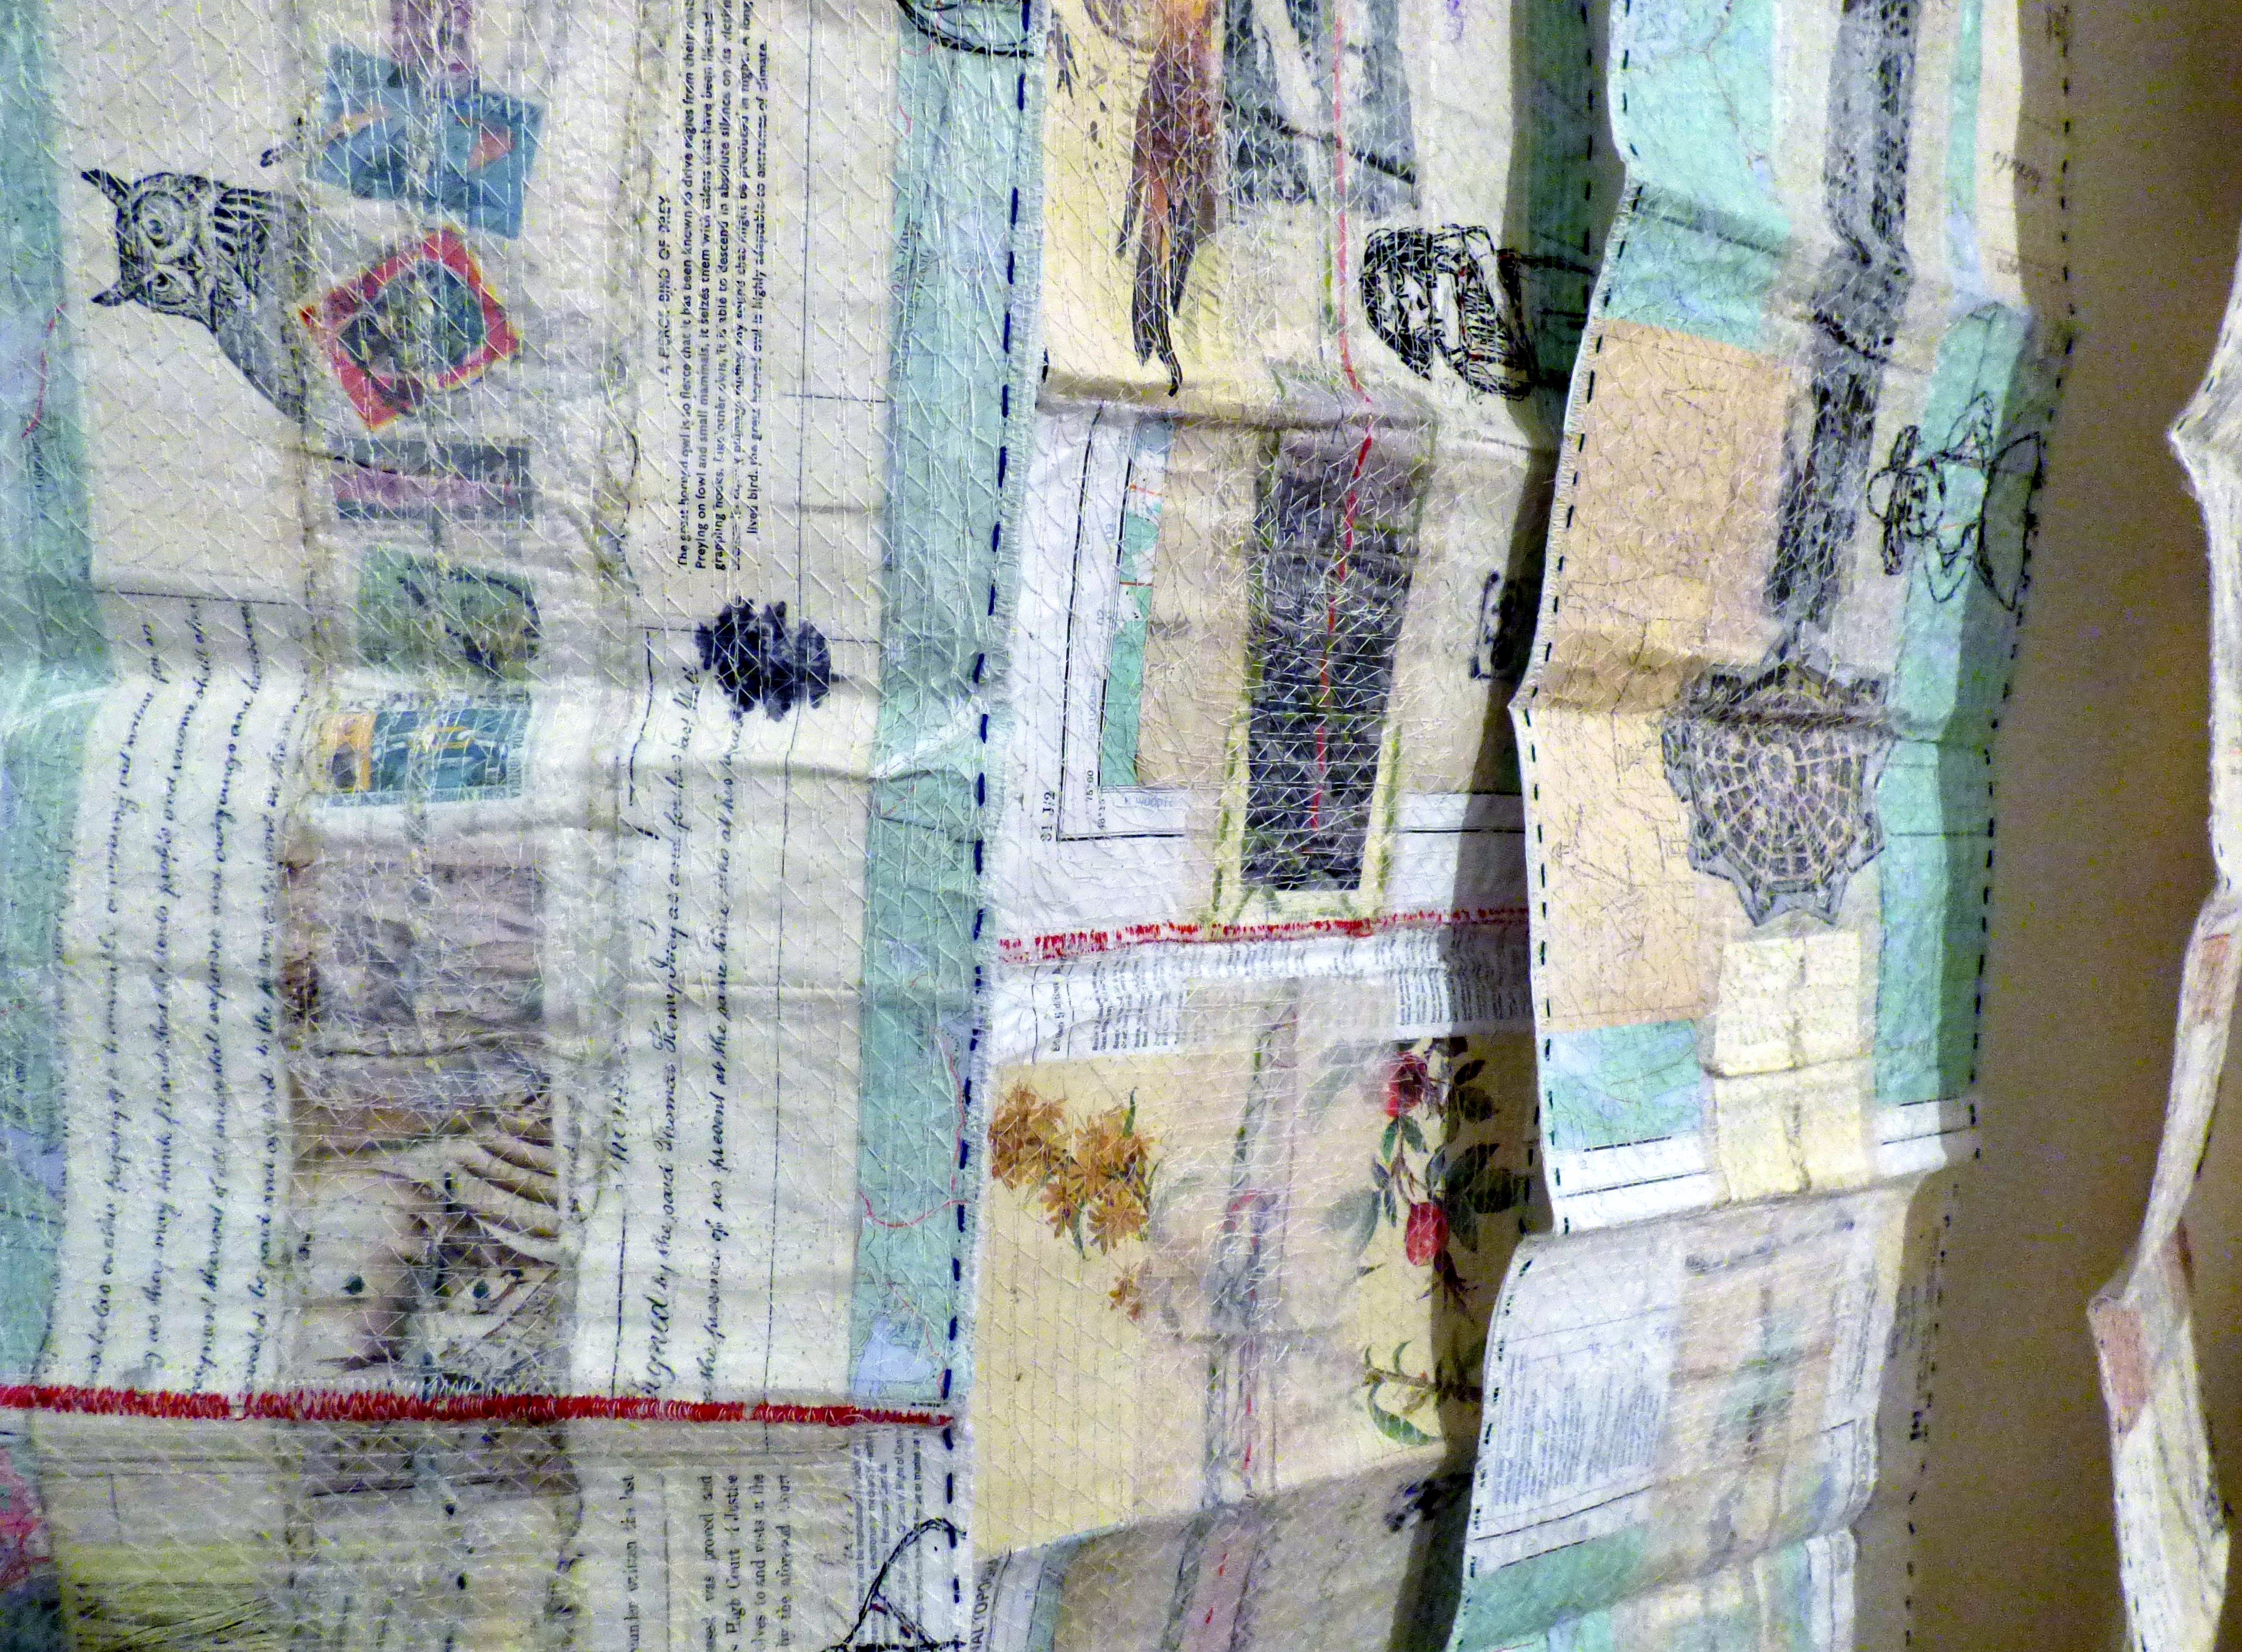 (detail) PARK WALK SKETCHBOOKS, mixed media textiles by Anne Kelly, Ruthin Craft Gallery, July 2021